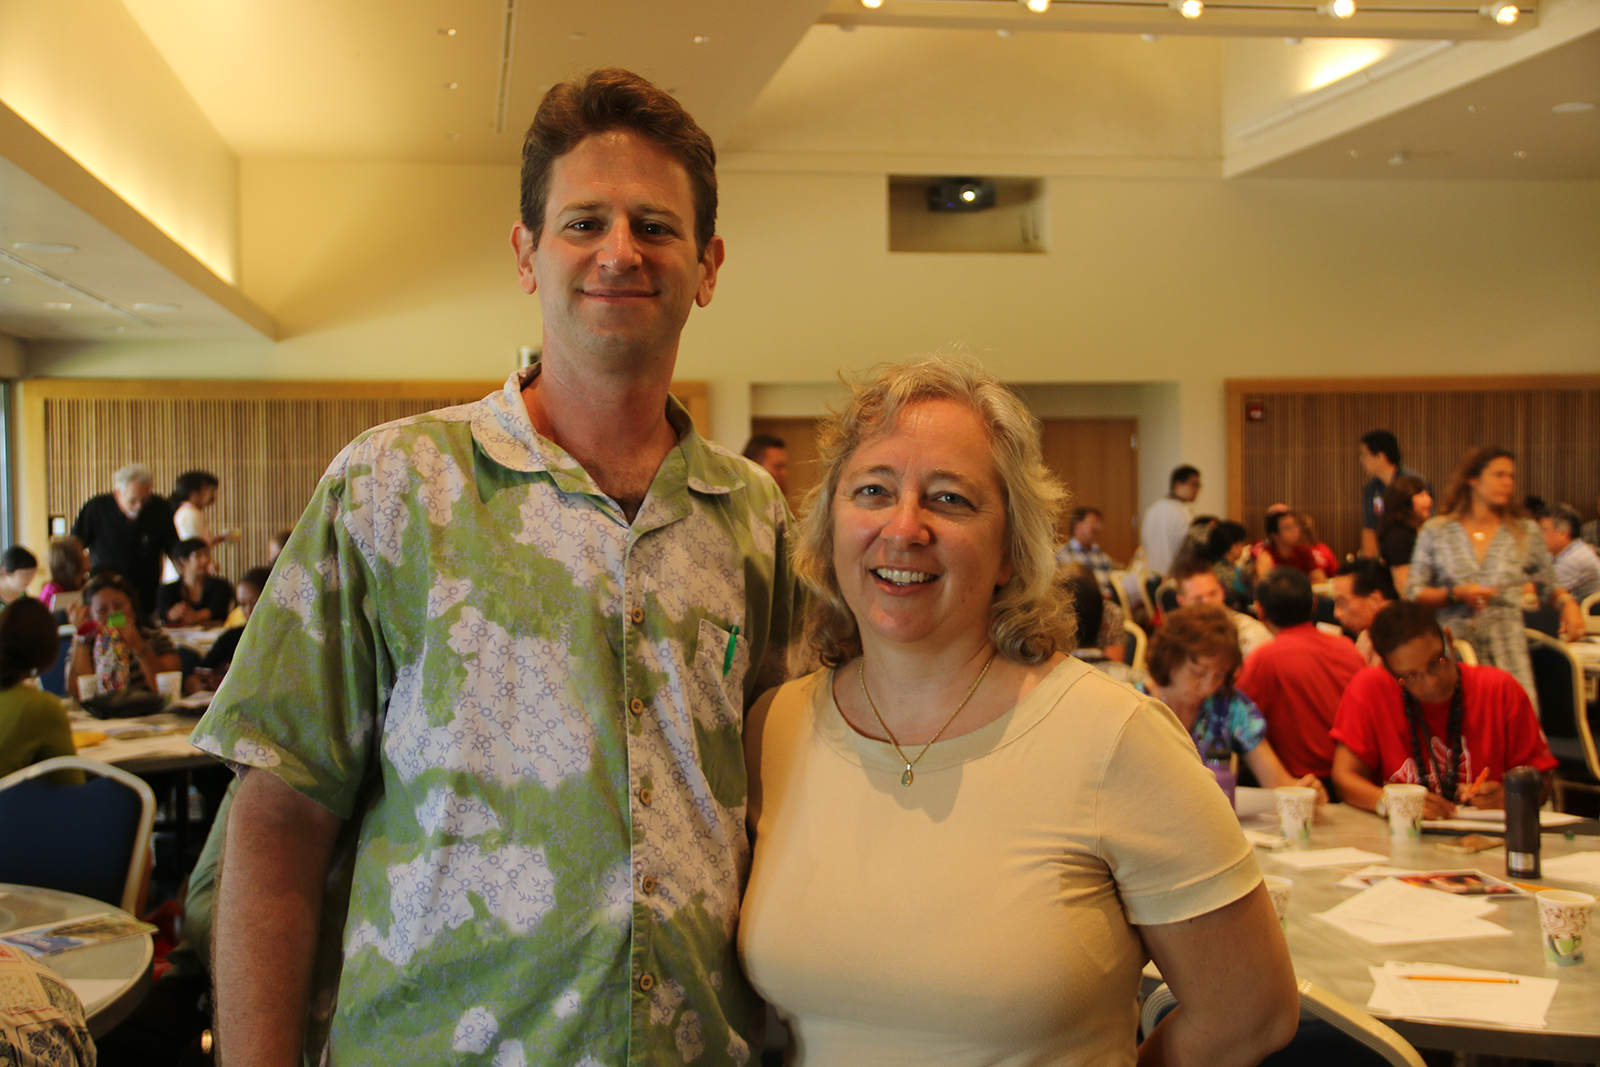 David Kupferman and Brenda Machosky